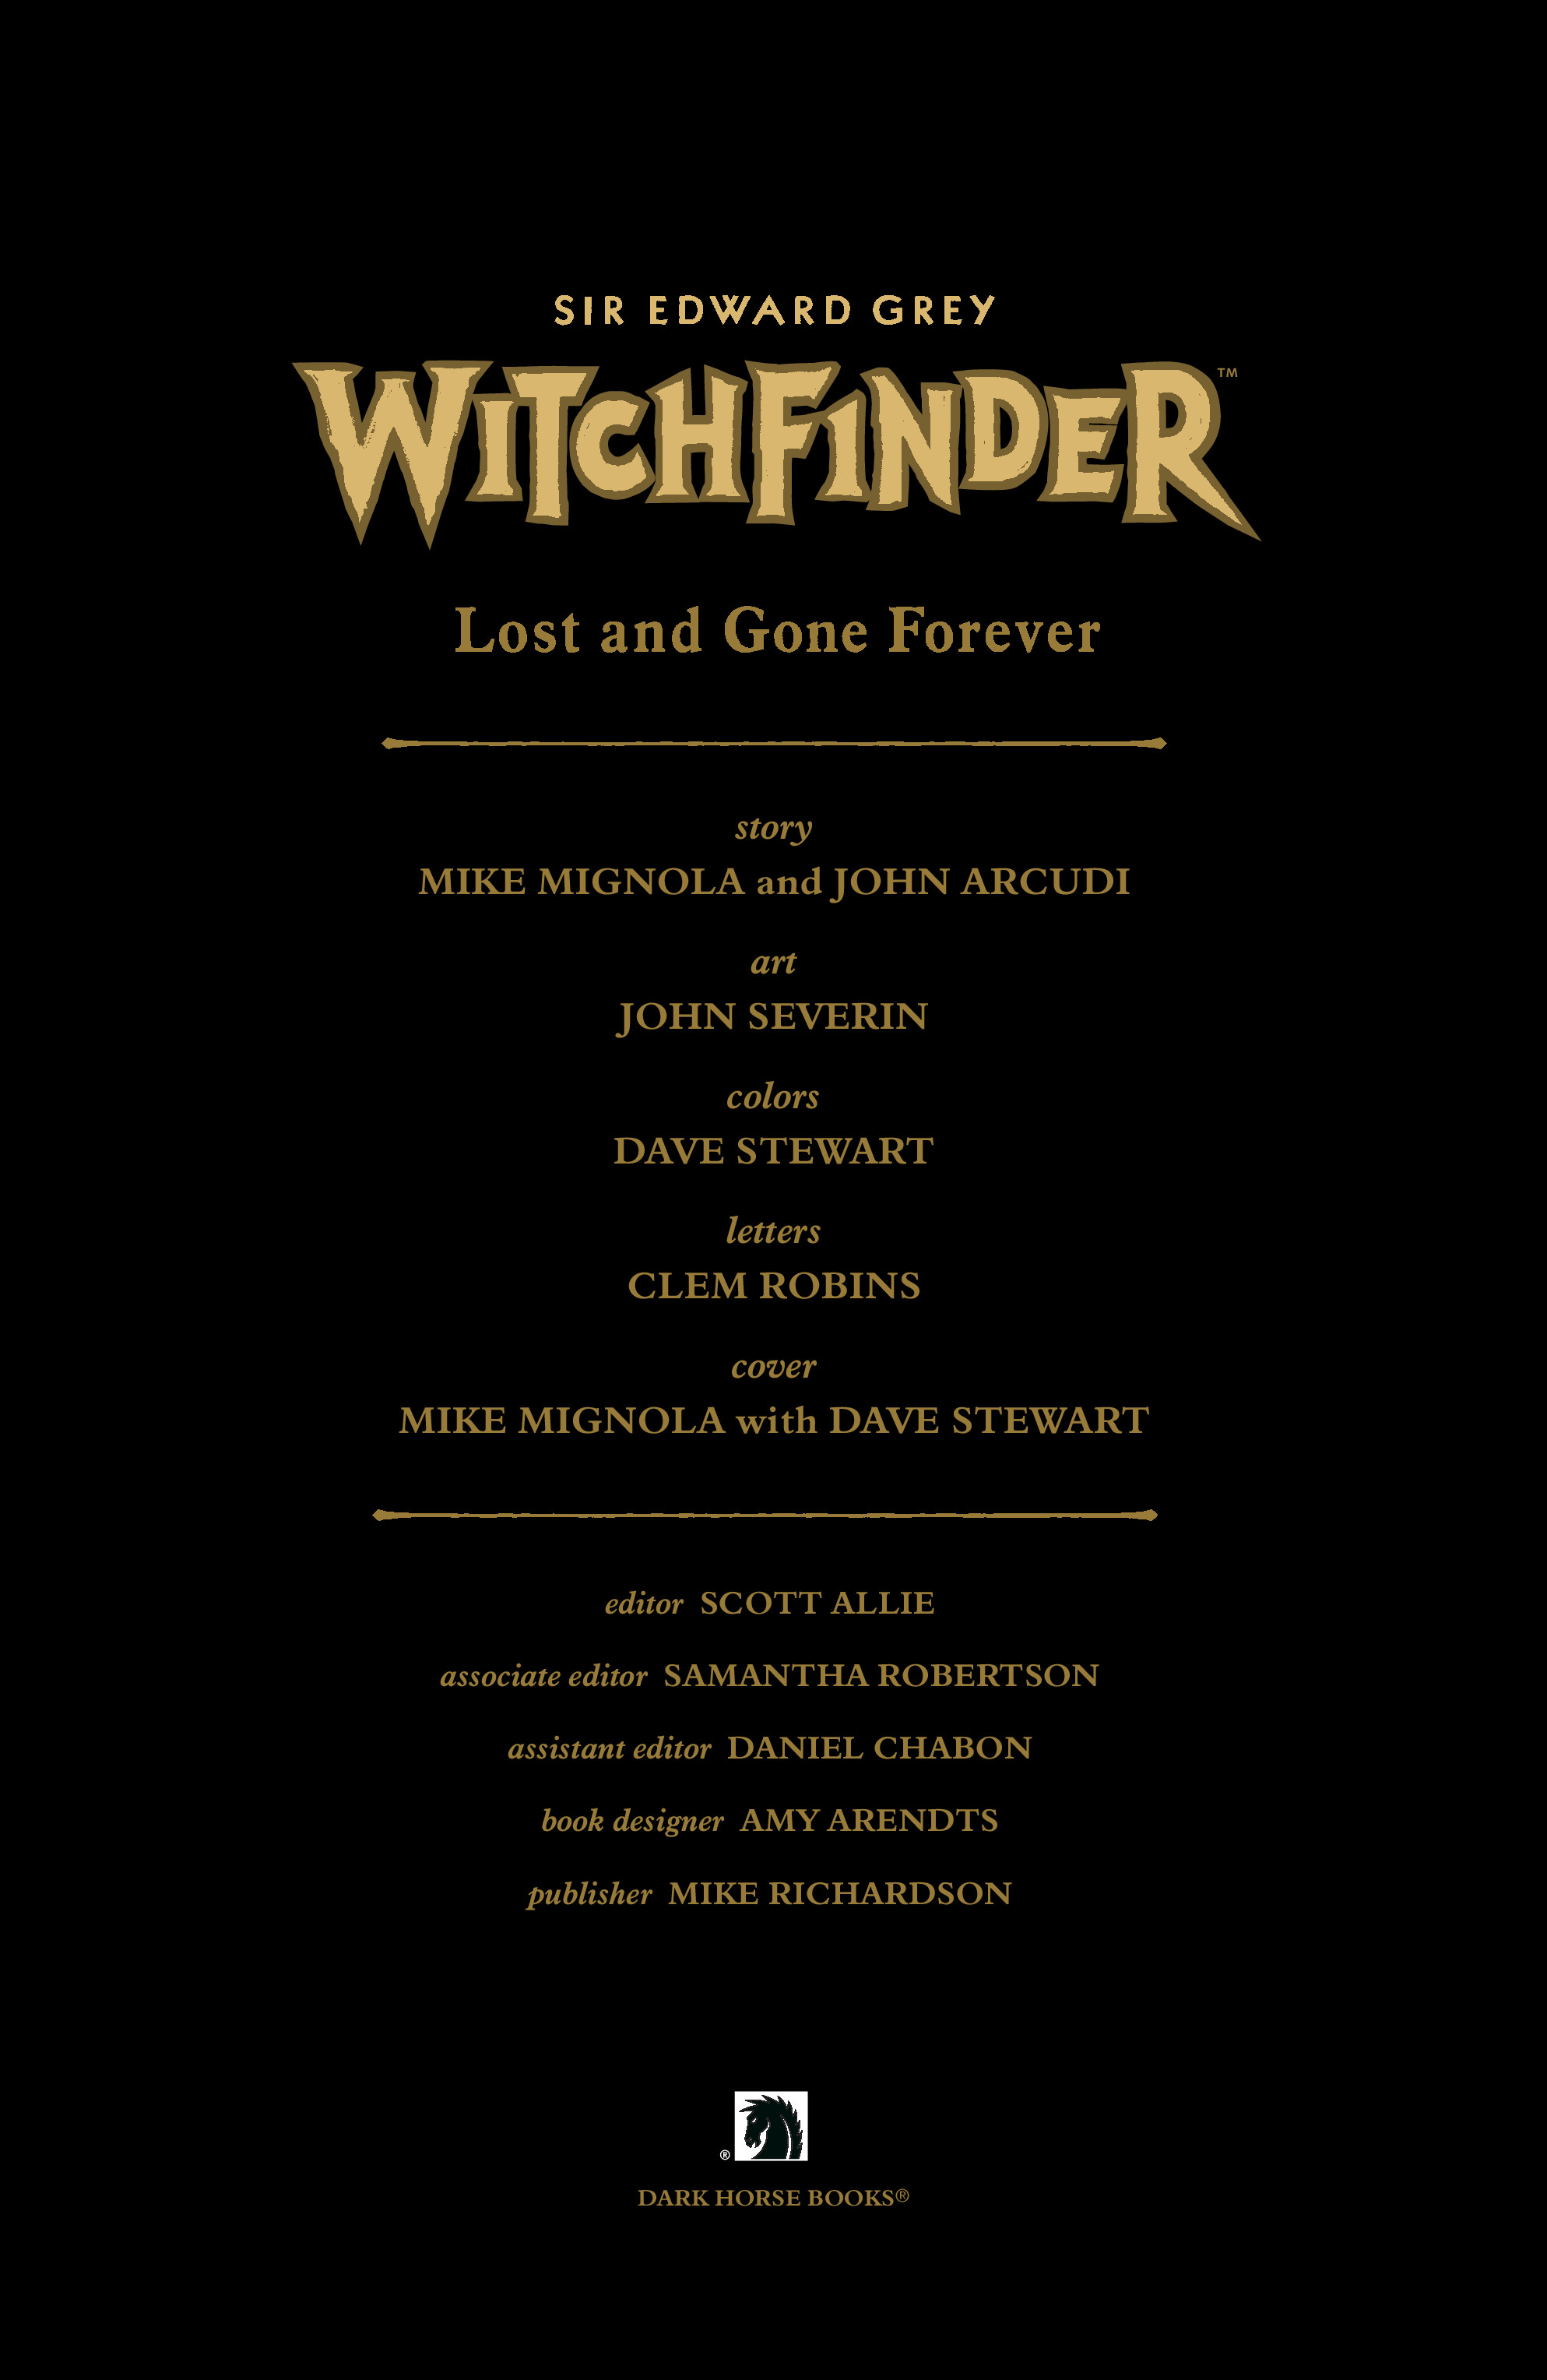 Read online Sir Edward Grey, Witchfinder: Lost and Gone Forever comic -  Issue # TPB - 5